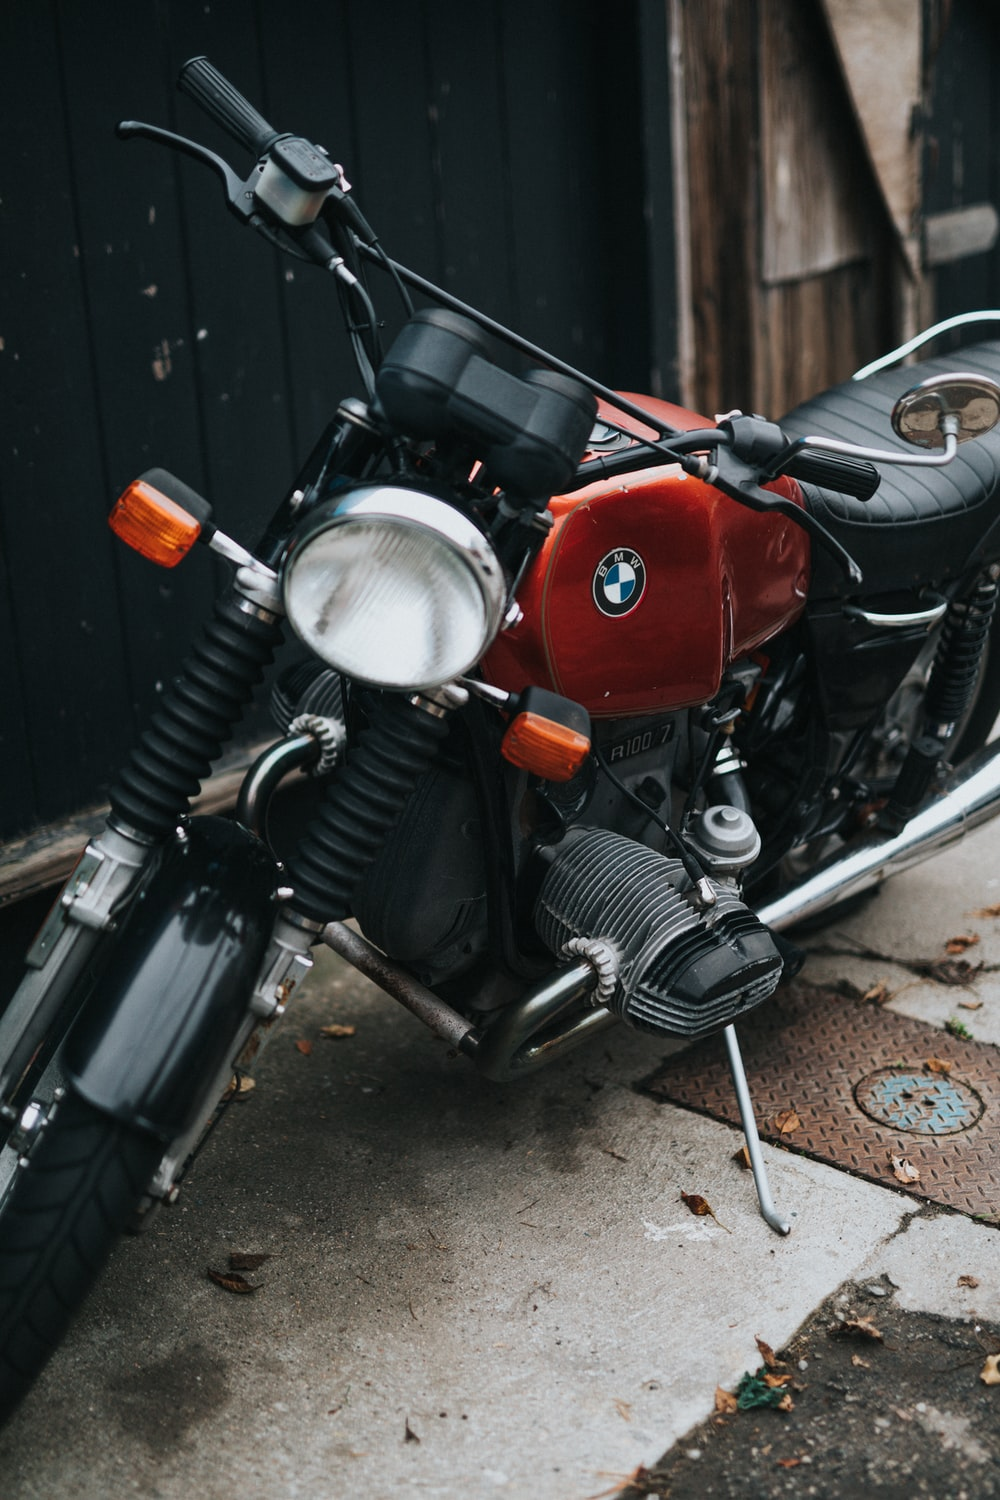 black and red BMW motorcycle